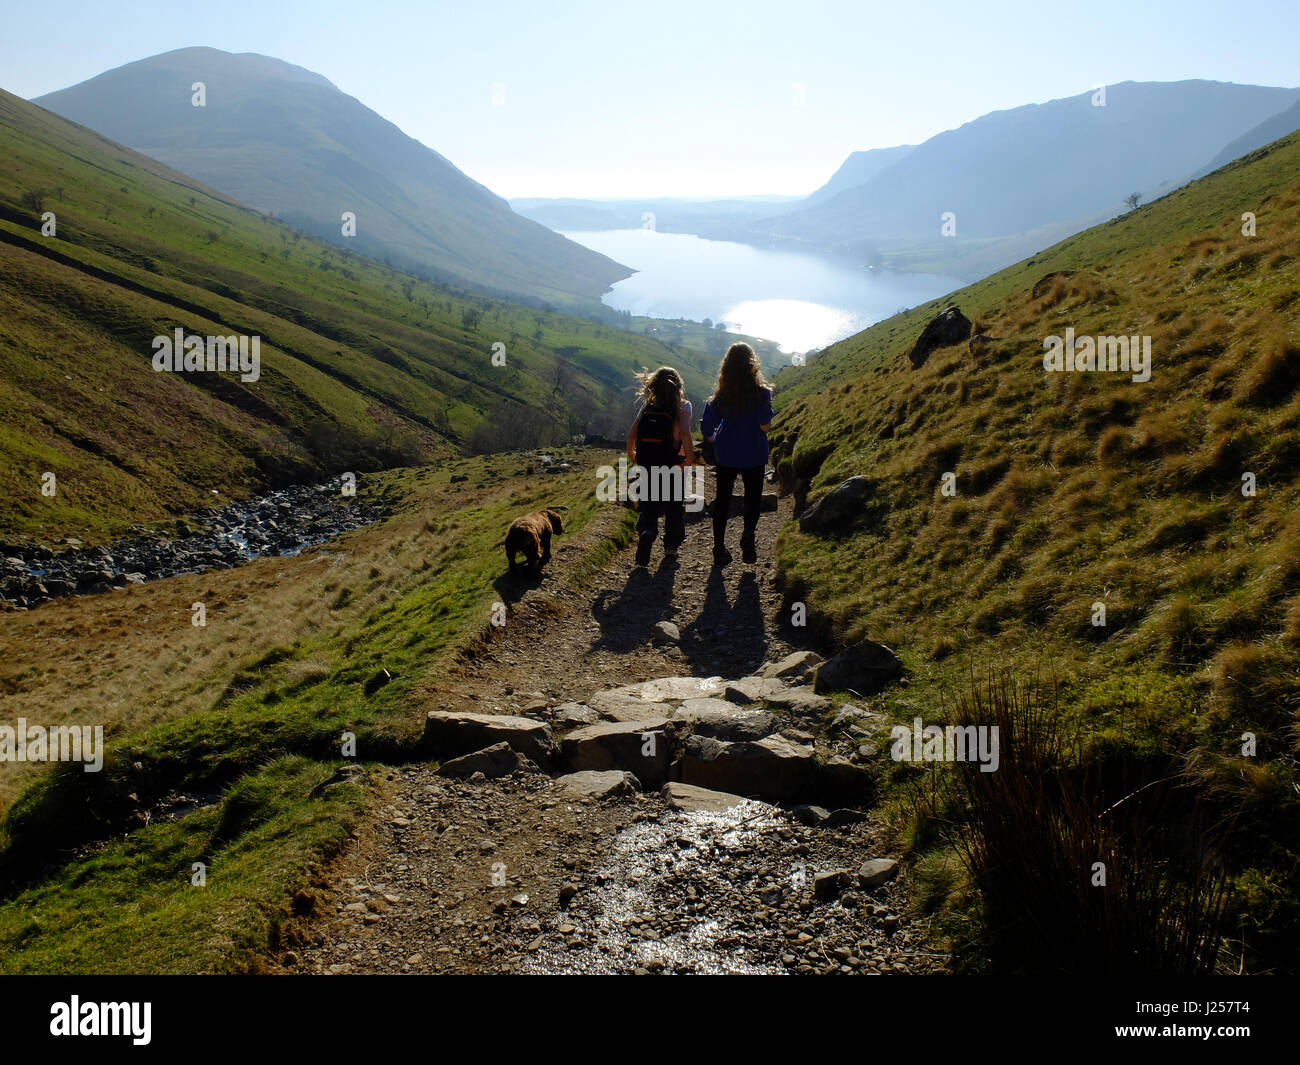 People hiking up to Scafell Pike in the Lade District, Cumbria, England's highest mountain. - Stock Image